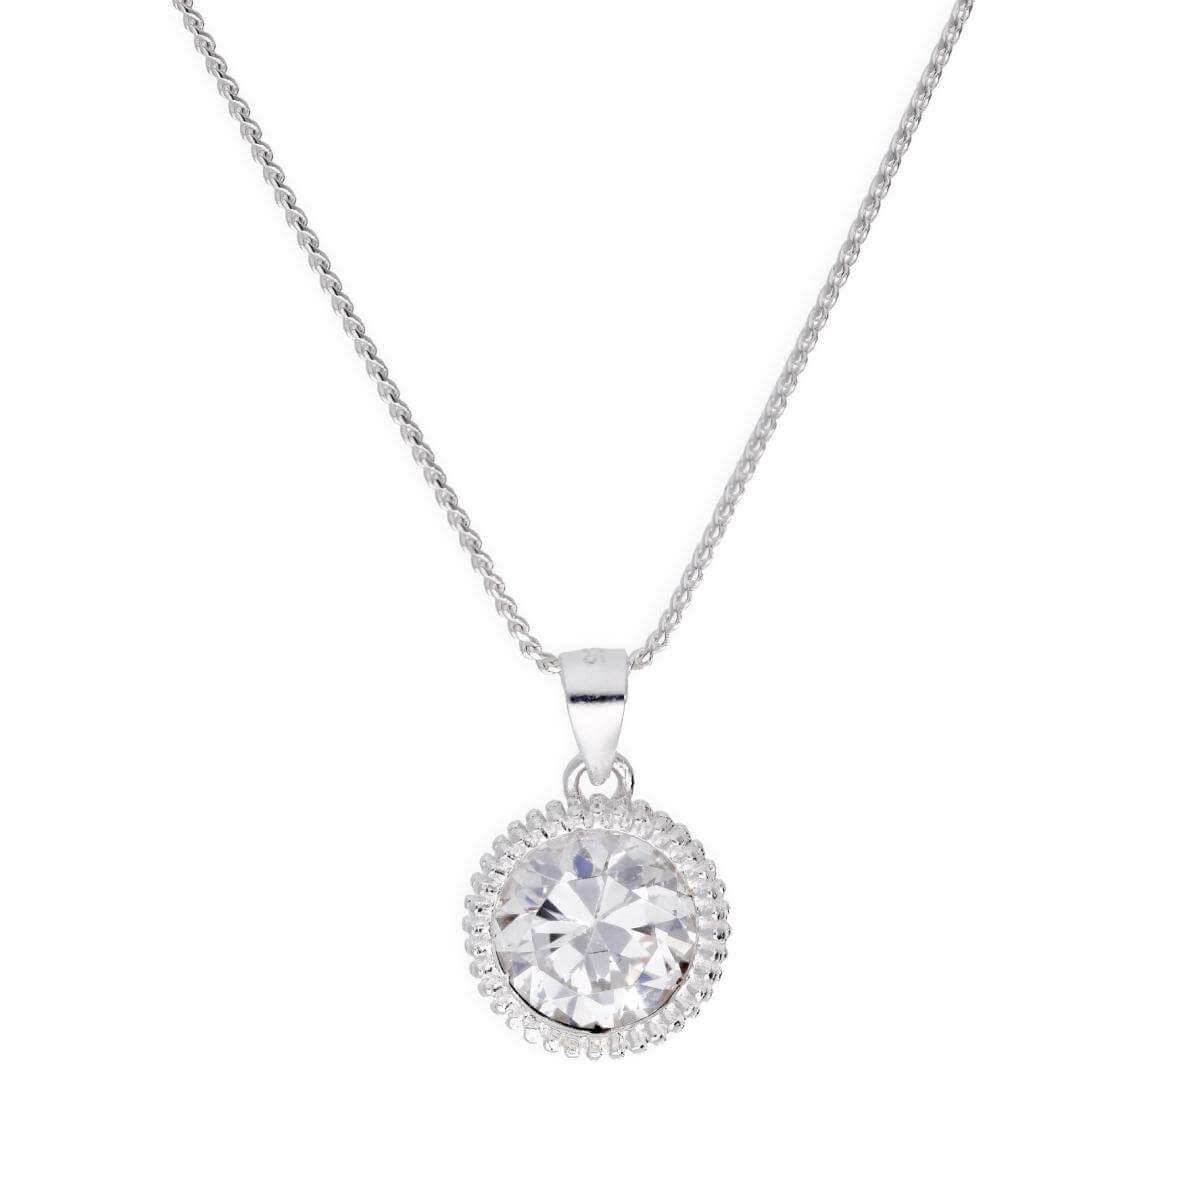 Sterling Silver Large Round Clear CZ Beaded Set Pendant Necklace 16 - 22 Inches